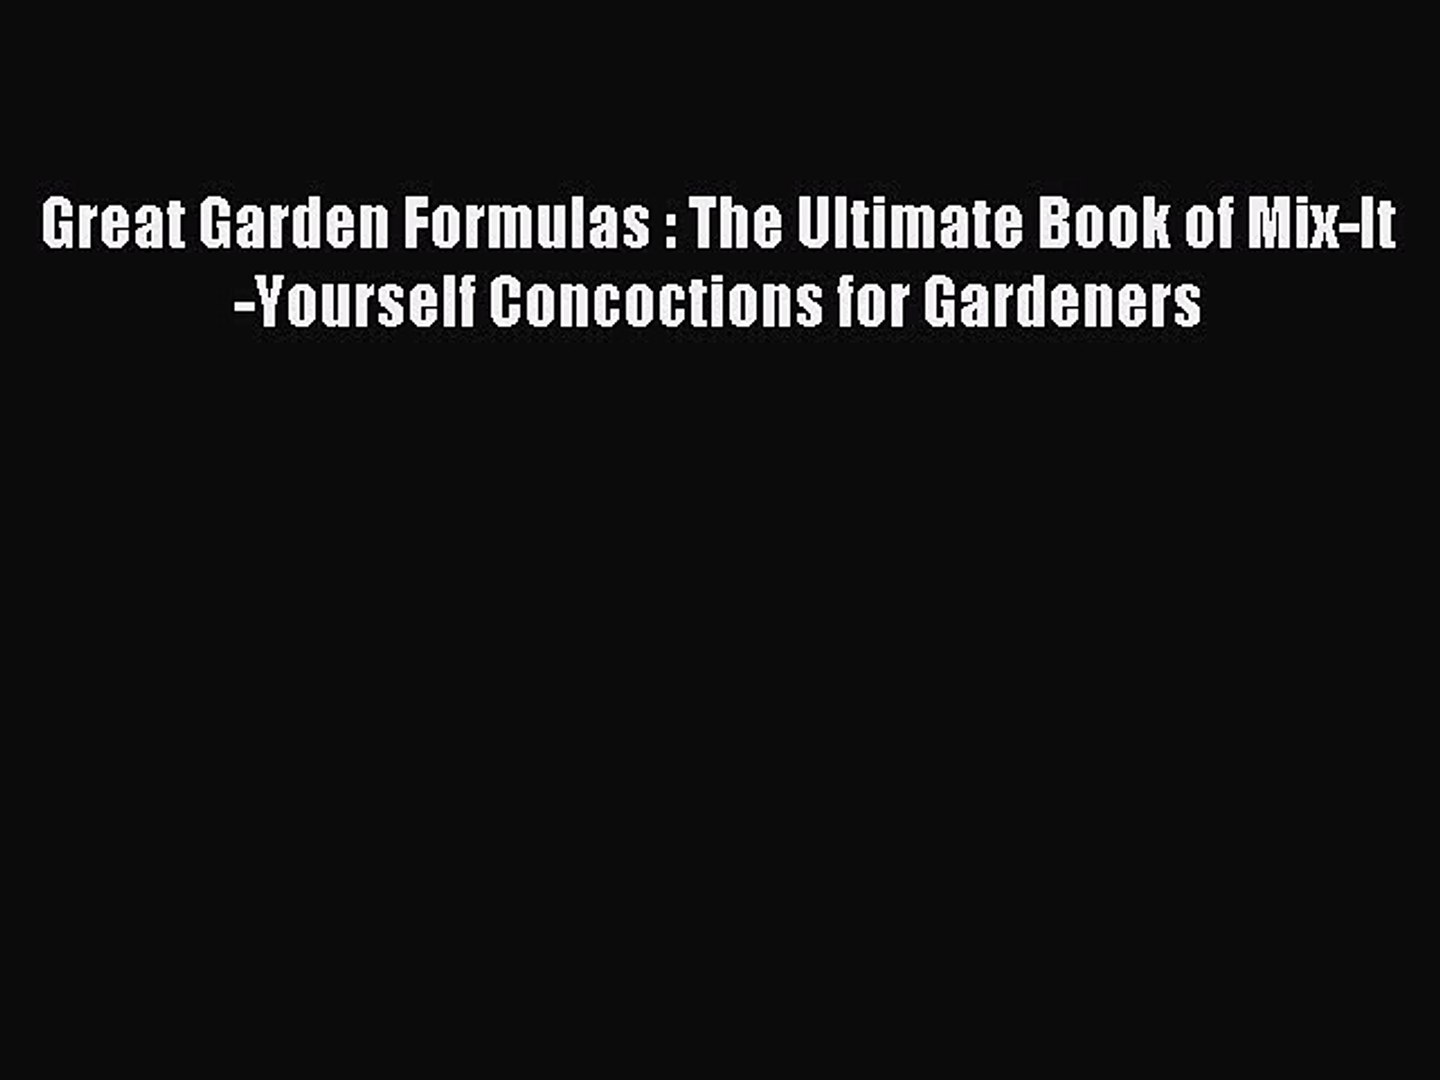 Read Great Garden Formulas : The Ultimate Book of Mix-It-Yourself Concoctions for Gardeners